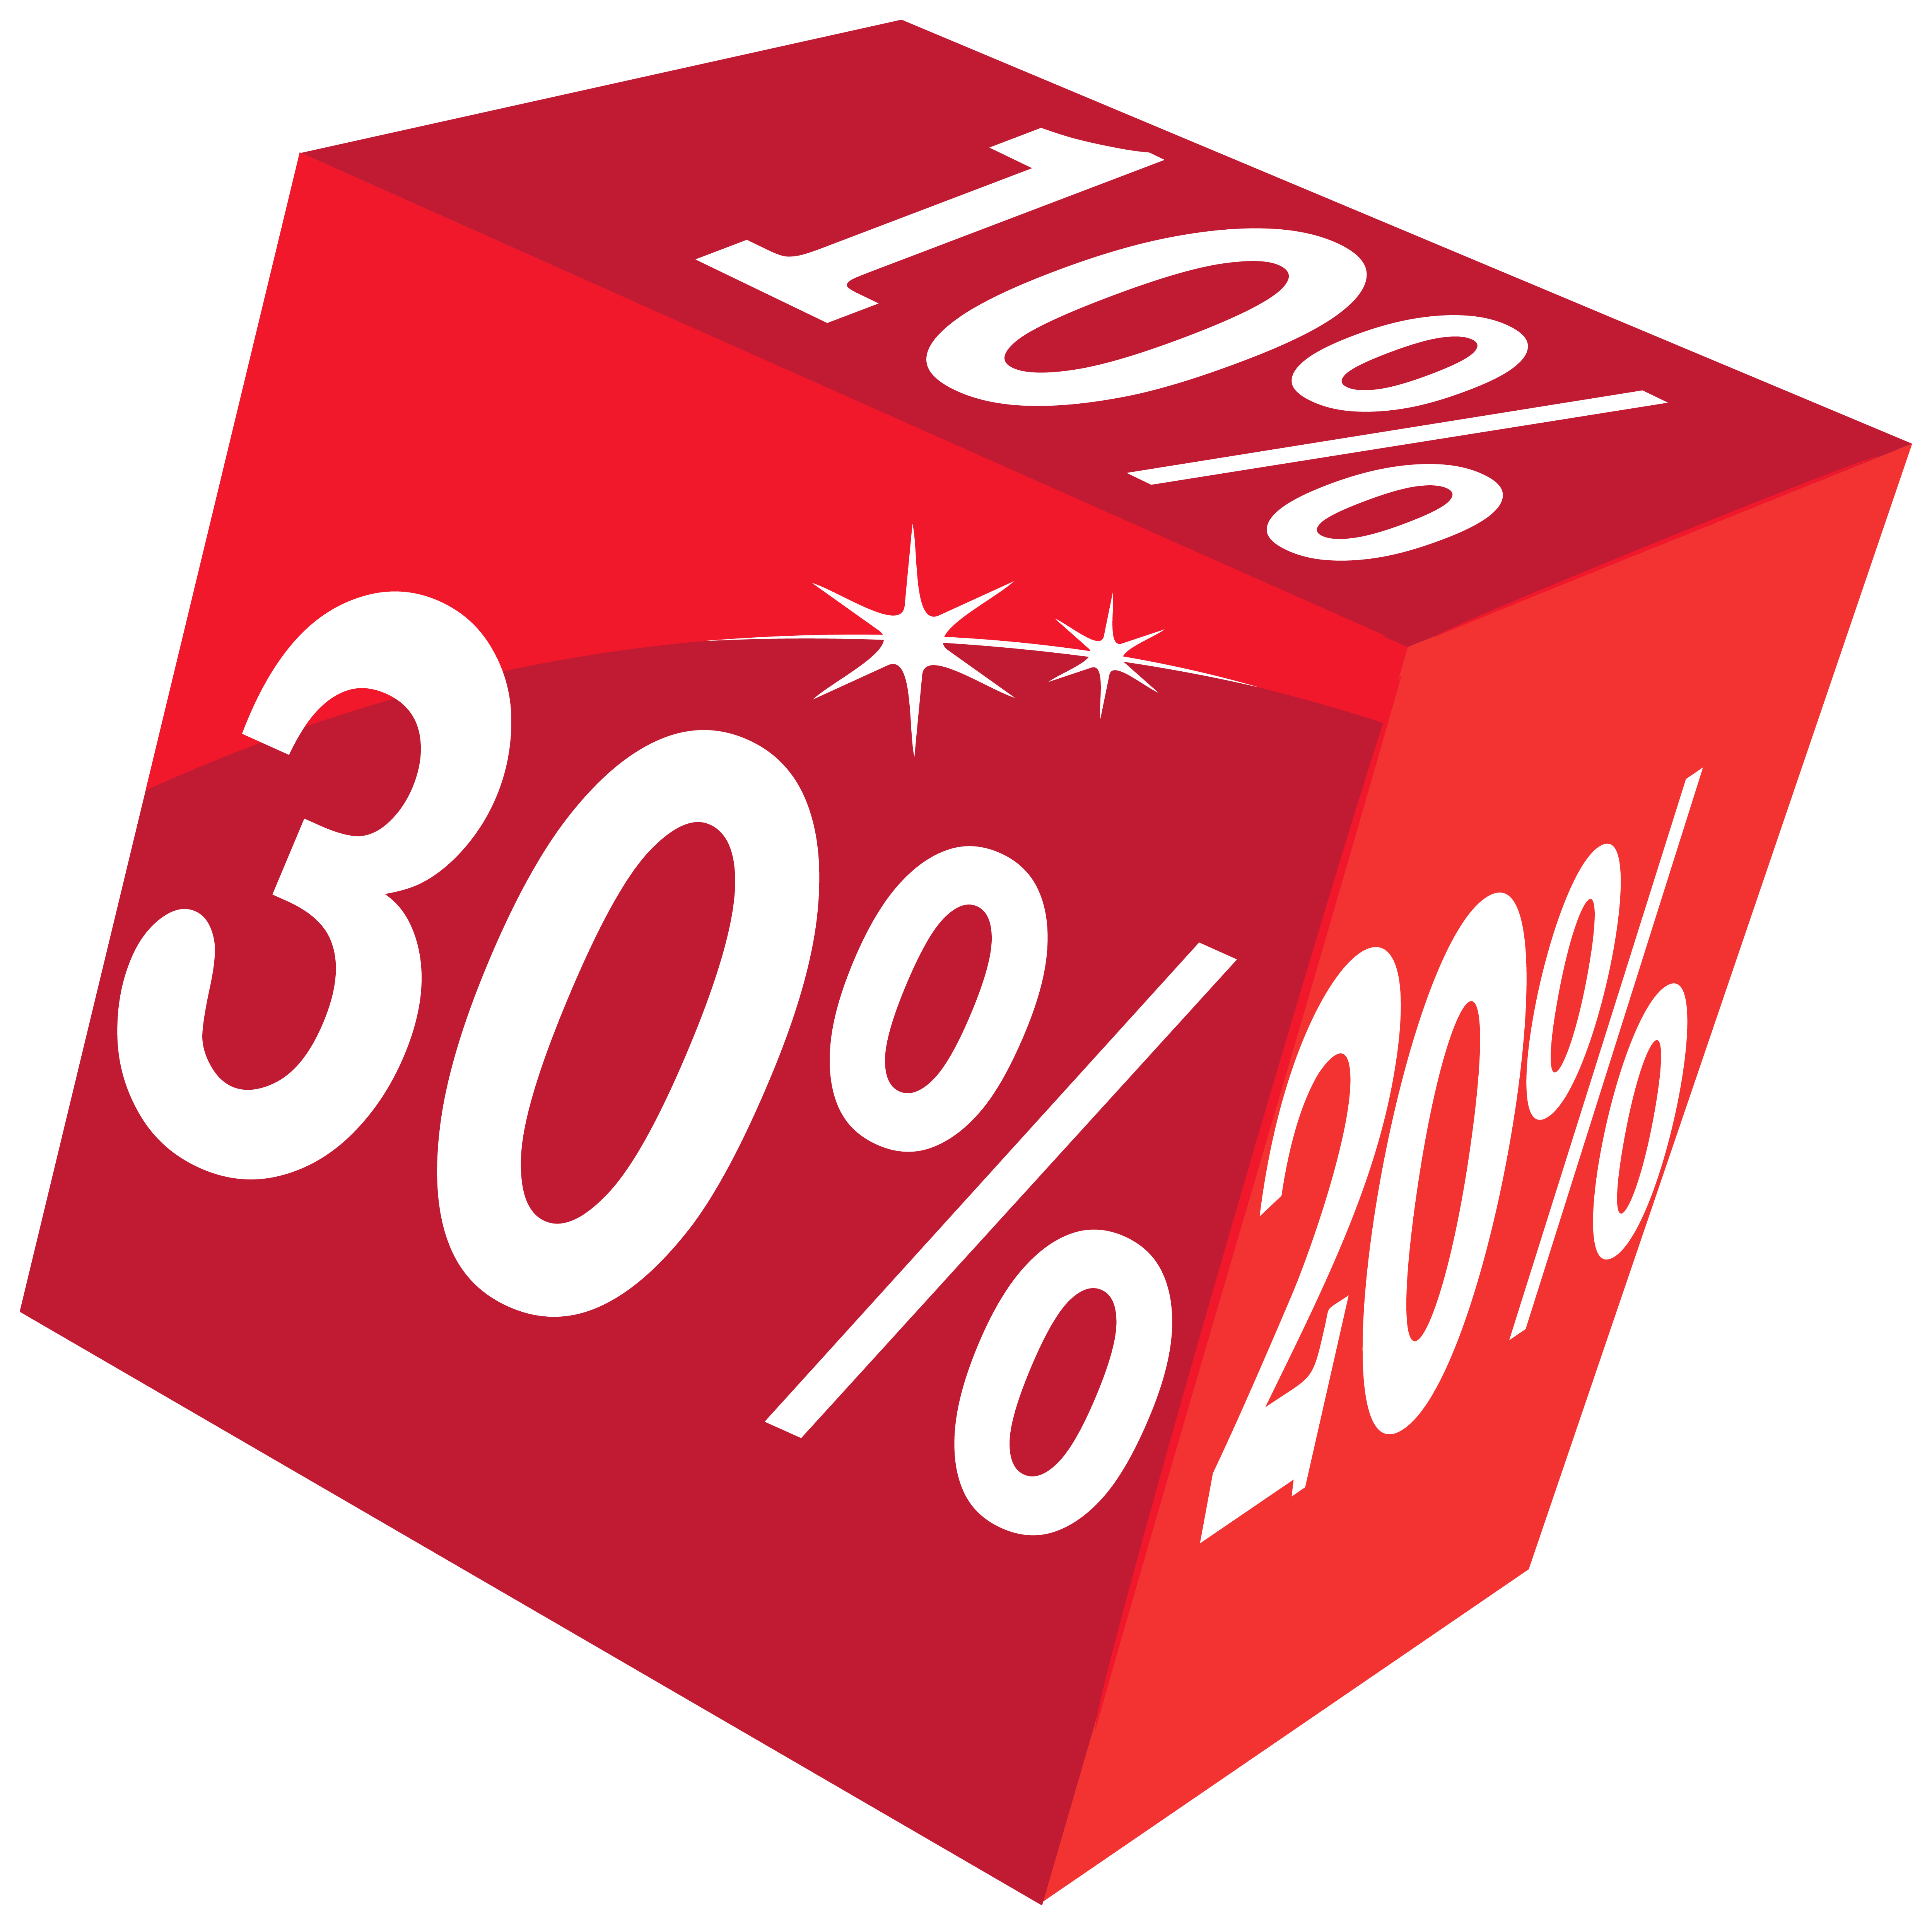 Clip Art for Discount.